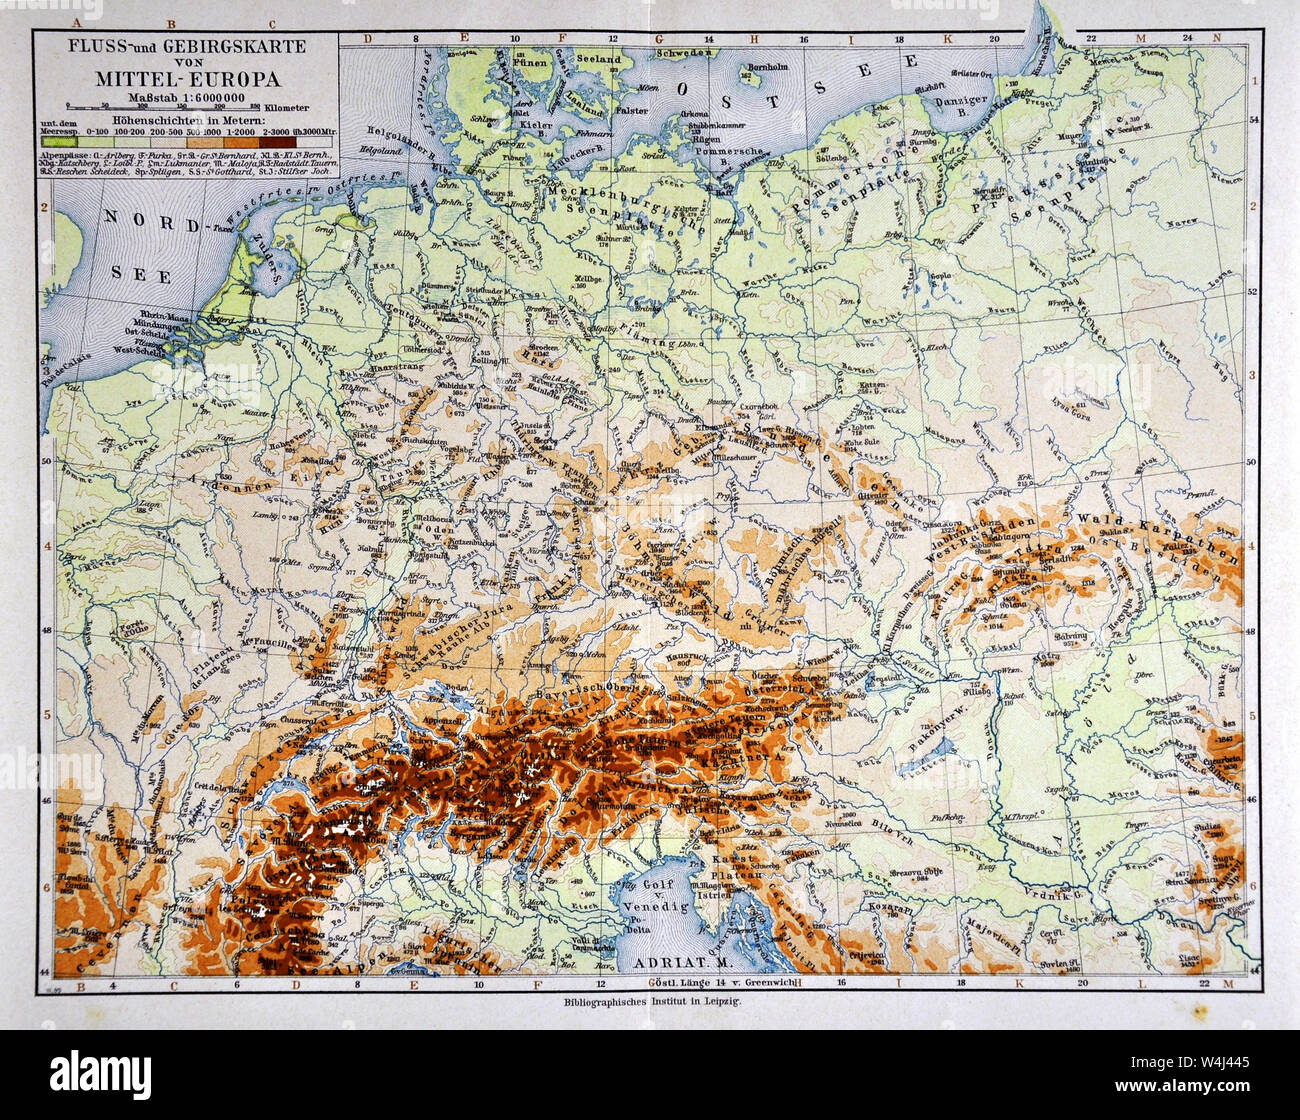 physical map of central europe 1900 Meyer Physical Map of Central Europe Stock Photo   Alamy